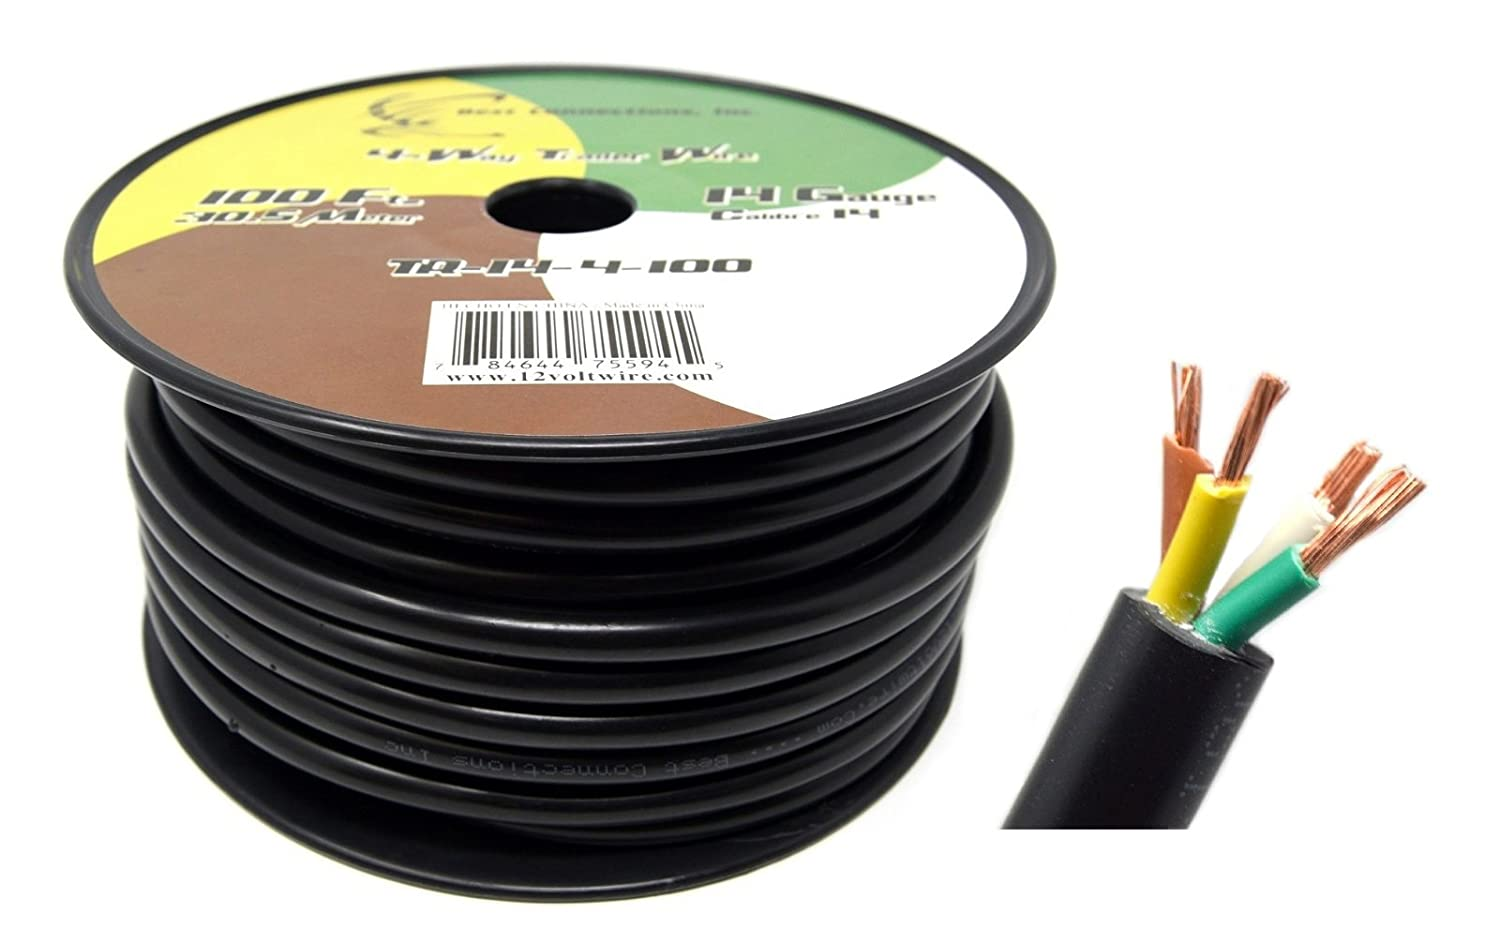 Best Connections Inc 4 Way Trailer Wire Harness 14GA 100ft Insulated  Stranded Copper Clad Aluminum